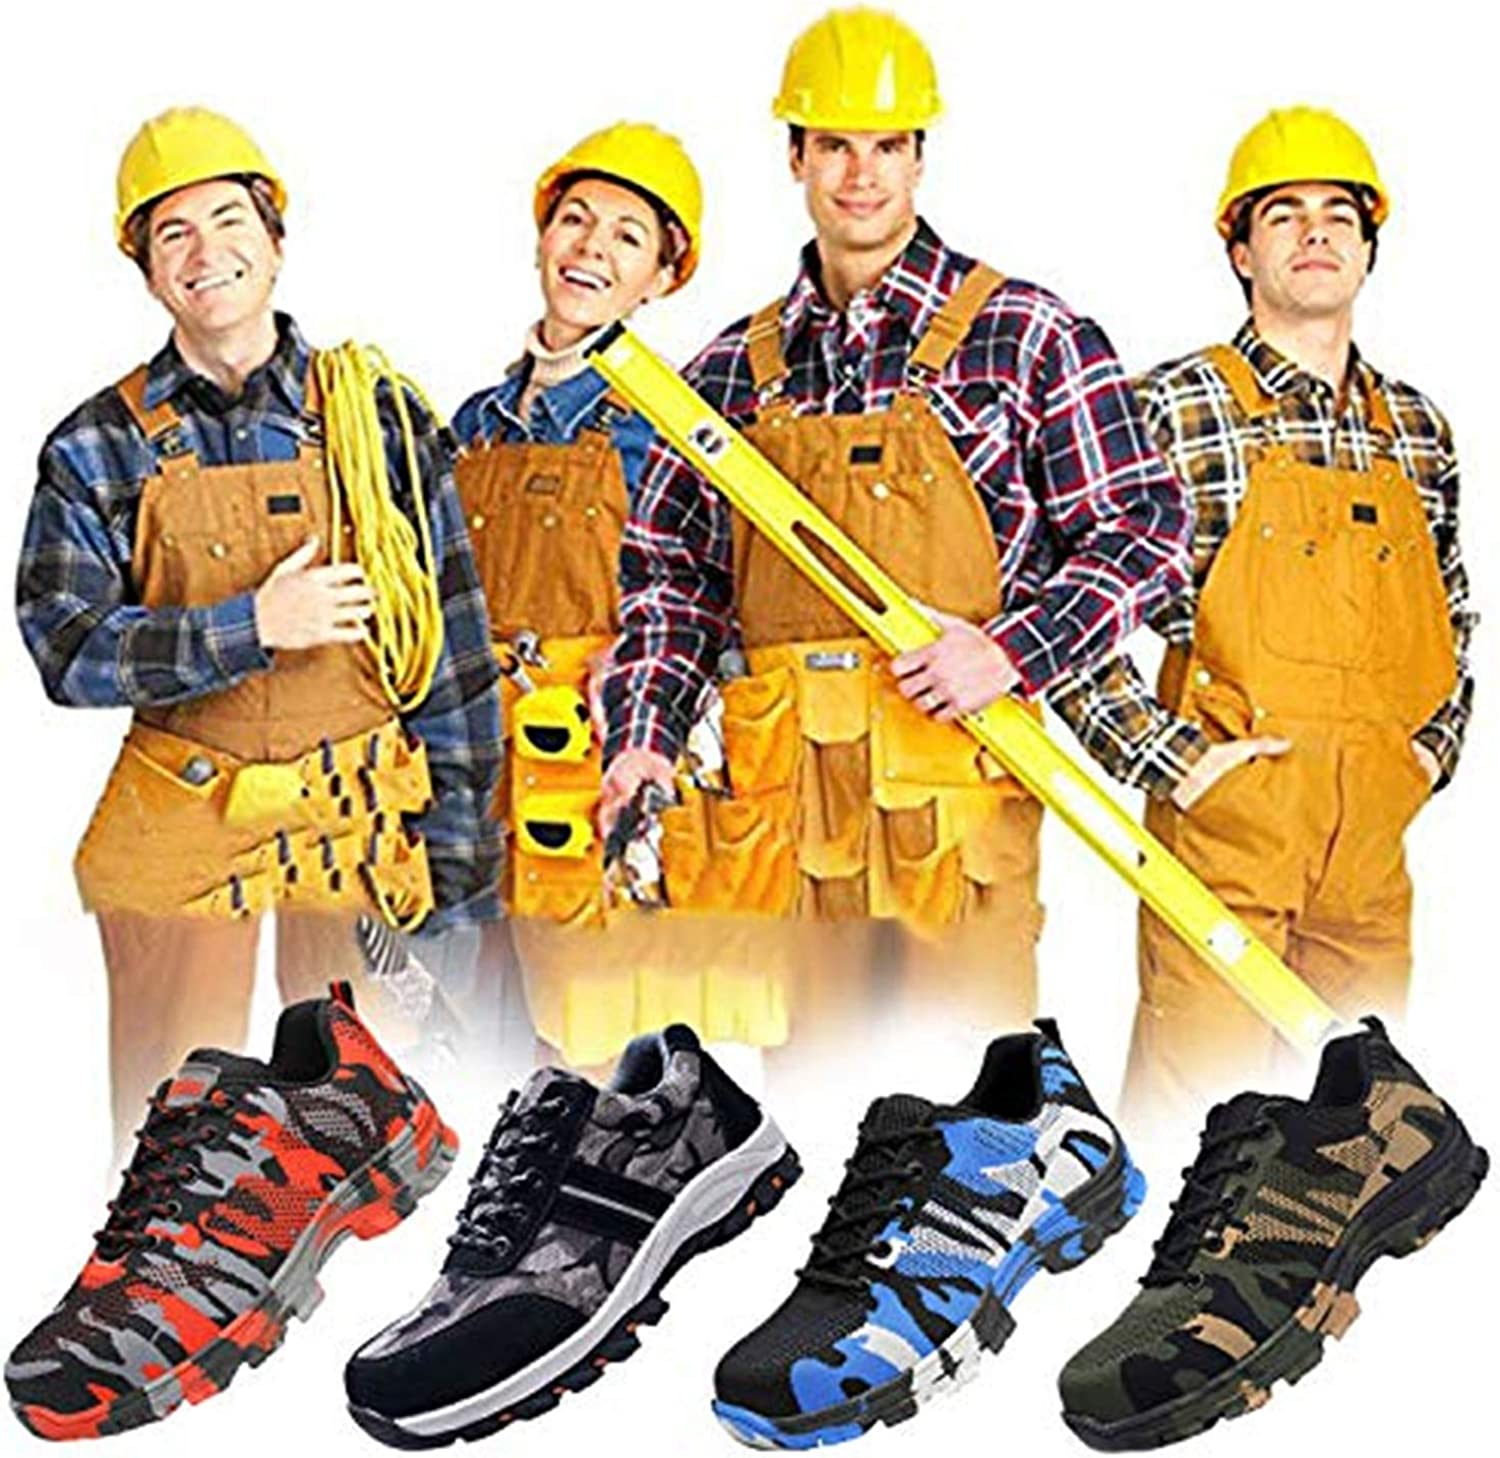 JACKSHIBO Steel Toe Work Shoes for Men Women Safety Shoes Breathable Industrial Construction Shoes